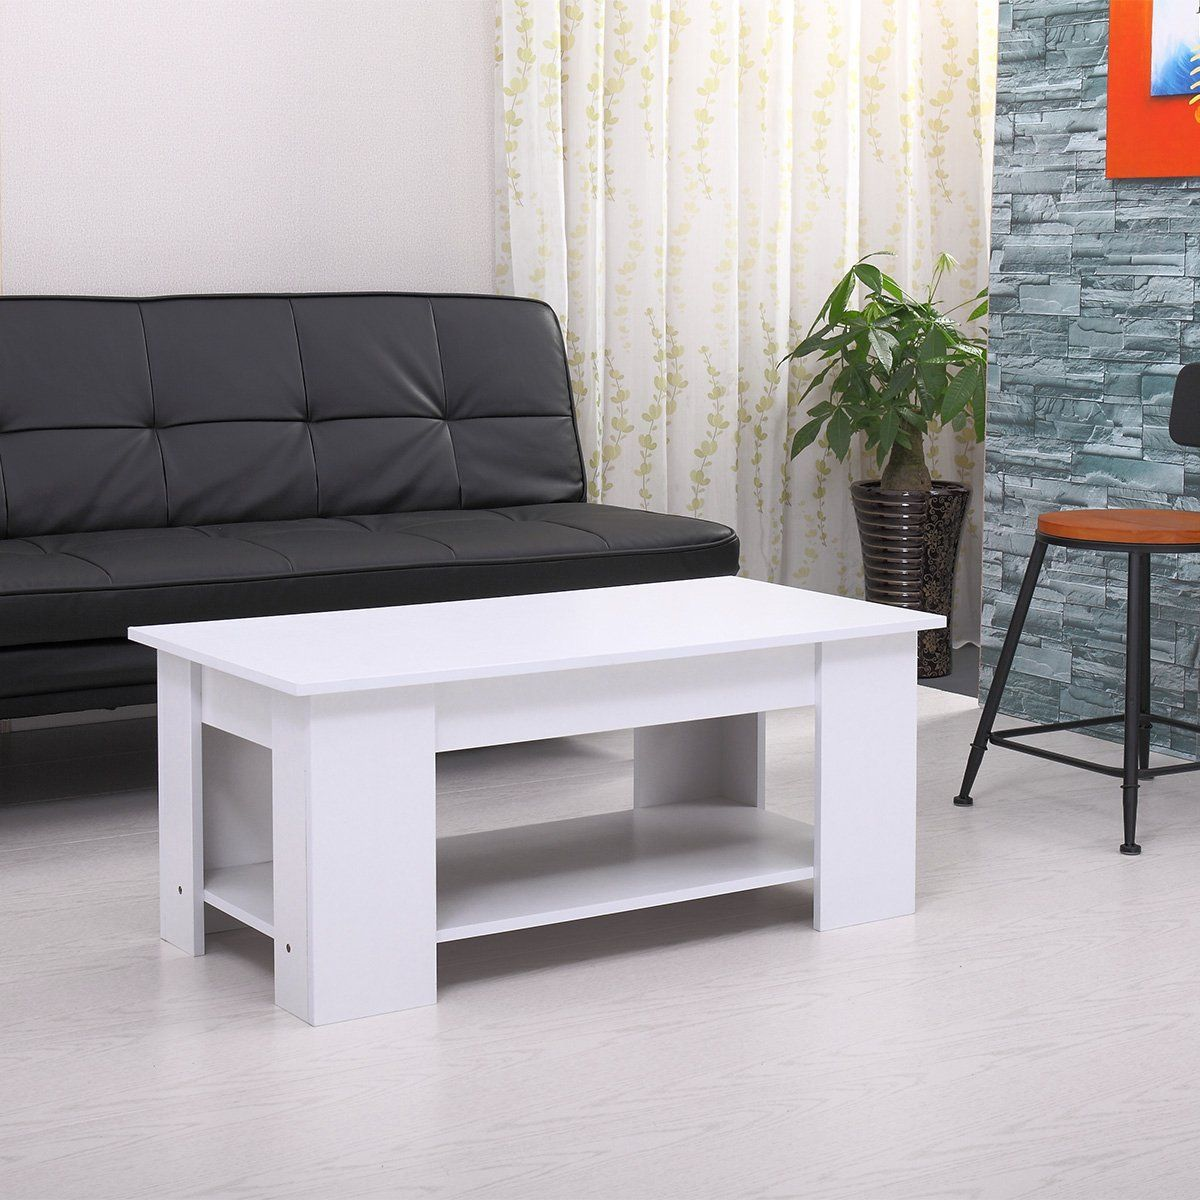 Tobbi White Lift Top Coffee Table W Storage Shelf And Lift Tabletop Wish To Know Much More Click On The Photo Coffee Table Lift Top Coffee Table Home Decor [ 1200 x 1200 Pixel ]